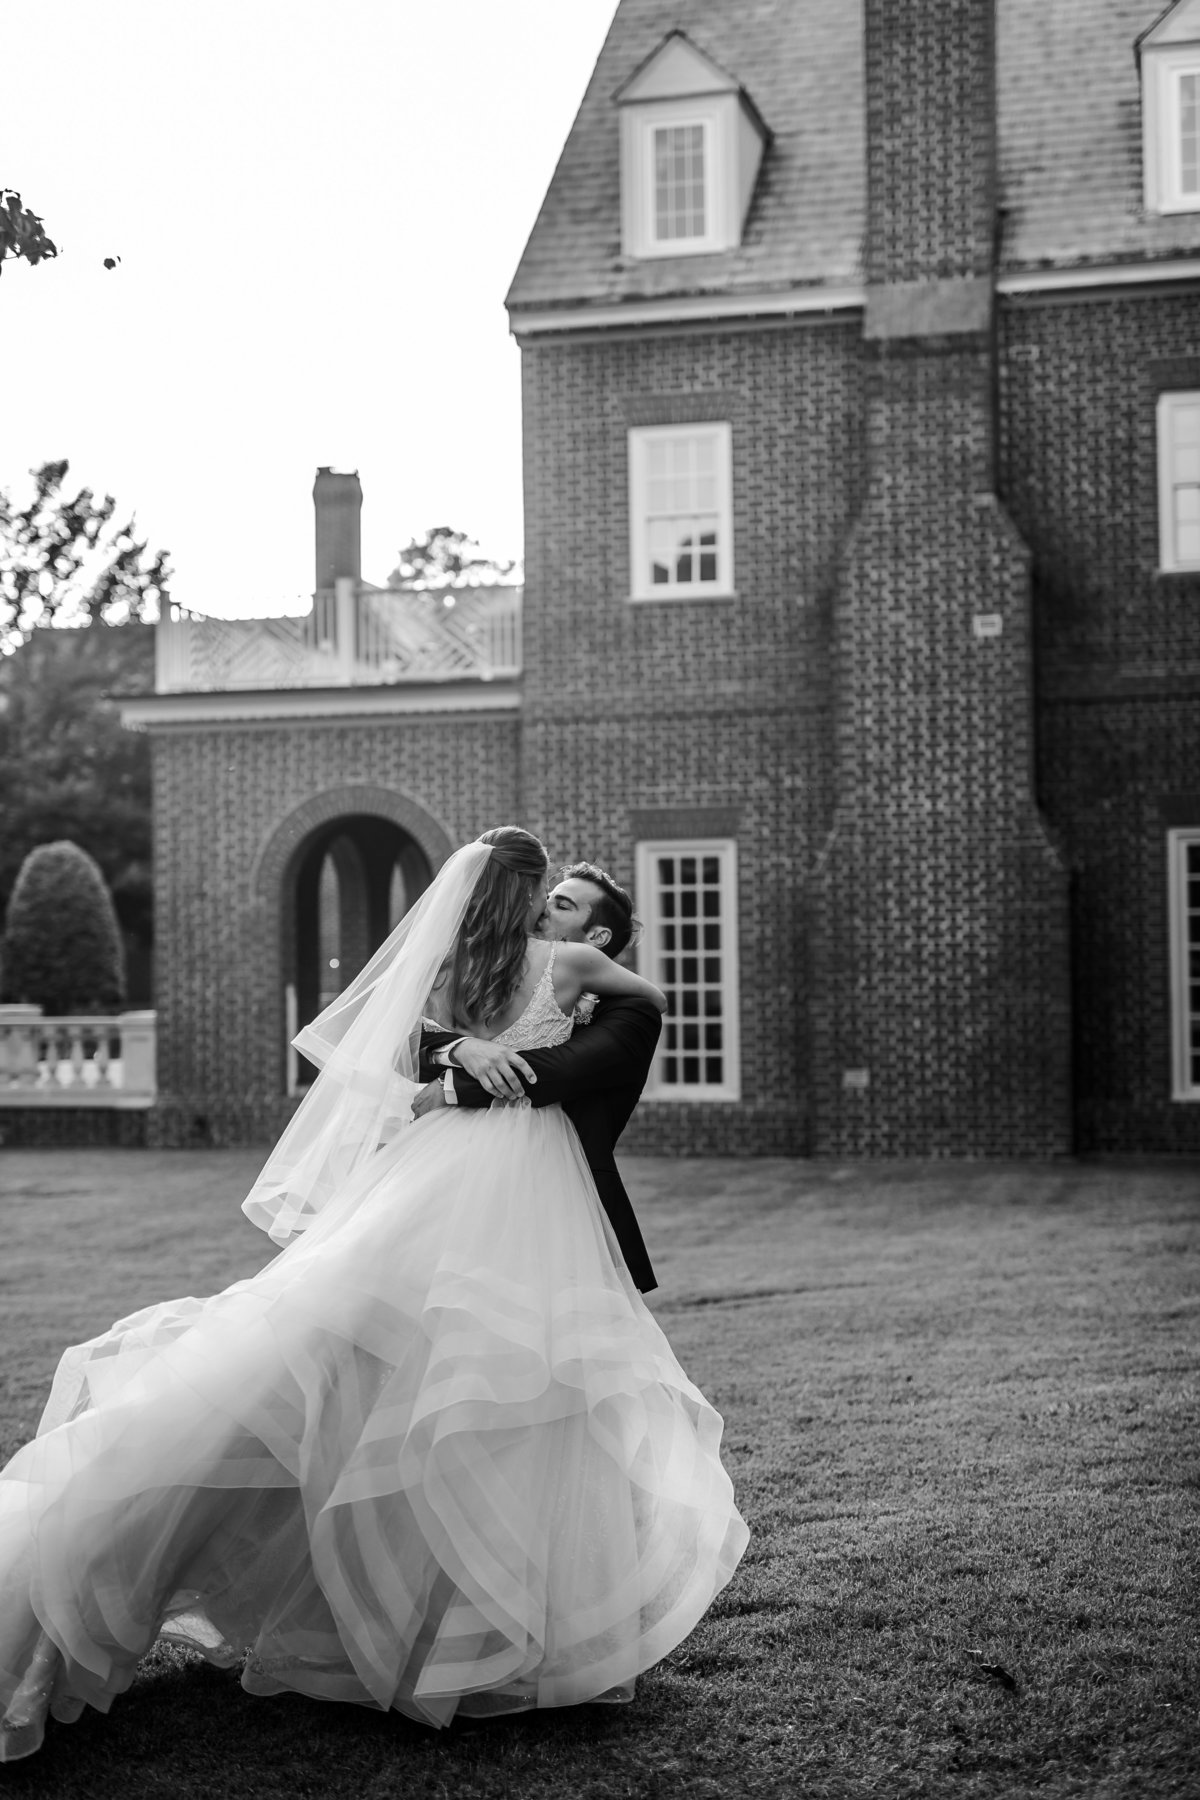 meghan lupyan hampton roads wedding photographer154